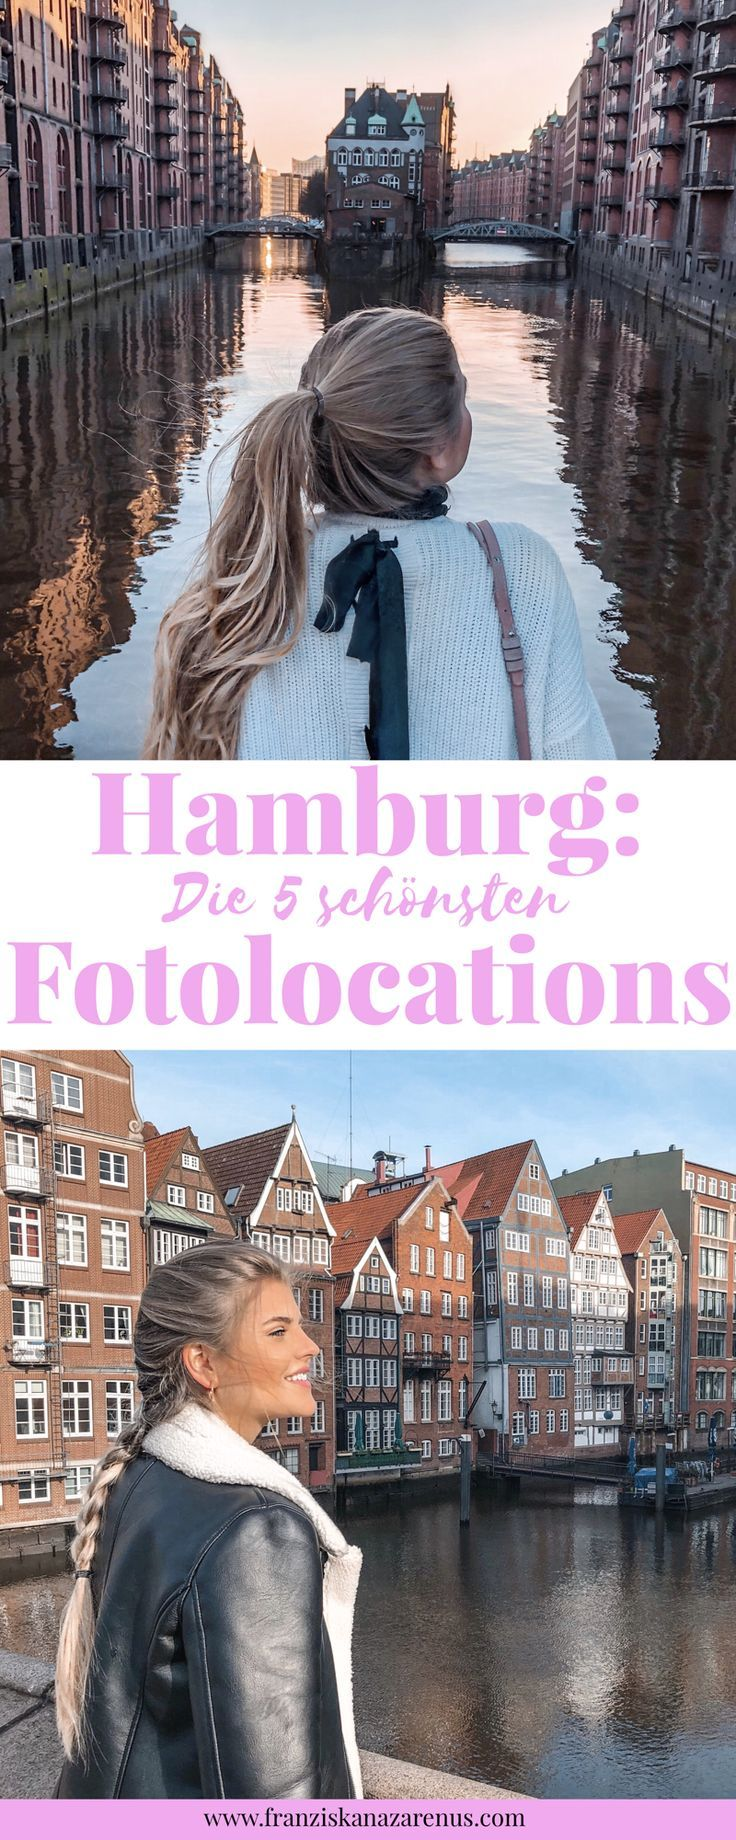 Die 5 schönsten Fotolocations in Hamburg